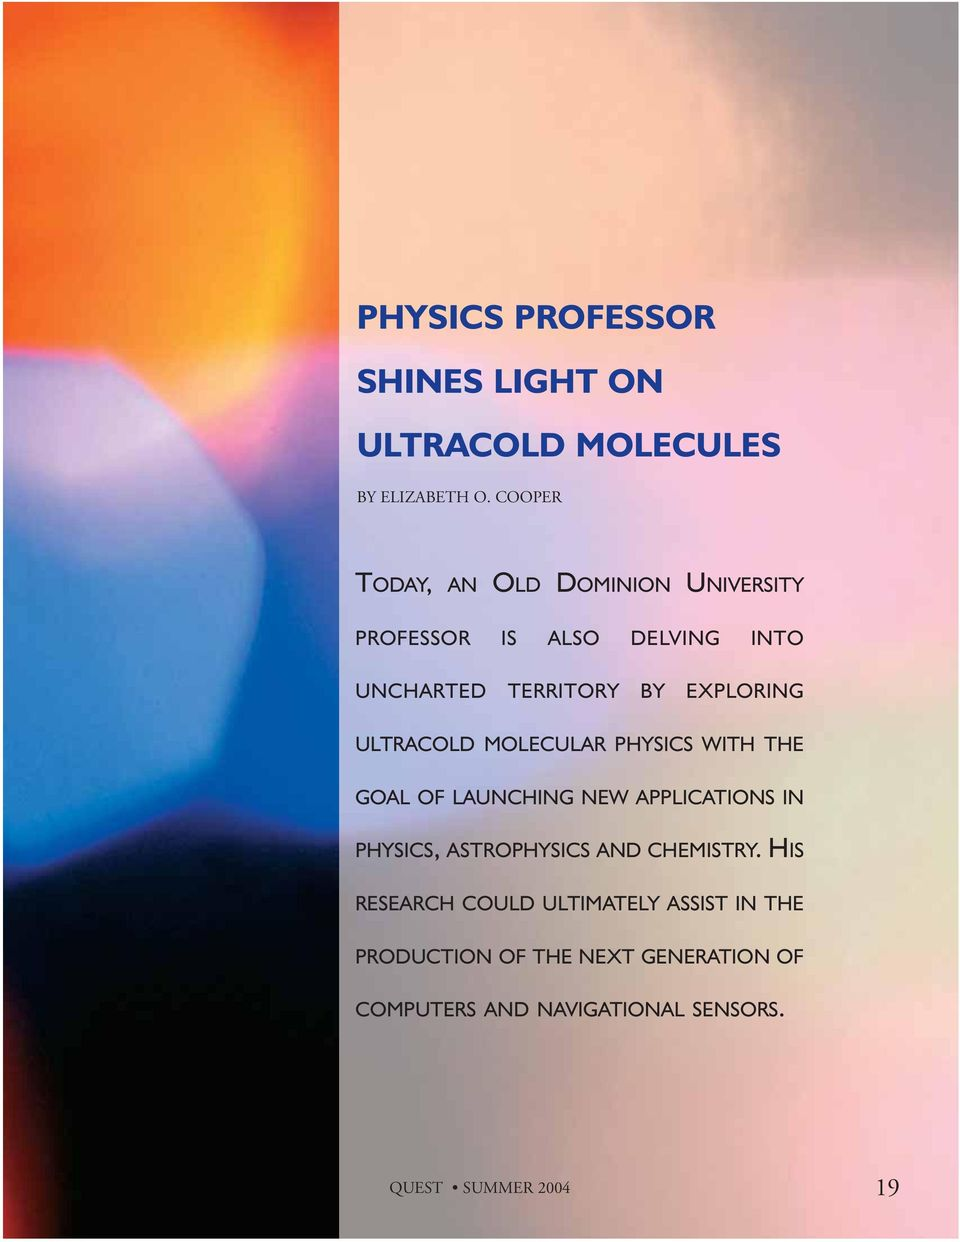 ULTRACOLD MOLECULAR PHYSICS WITH THE GOAL OF LAUNCHING NEW APPLICATIONS IN PHYSICS, ASTROPHYSICS AND